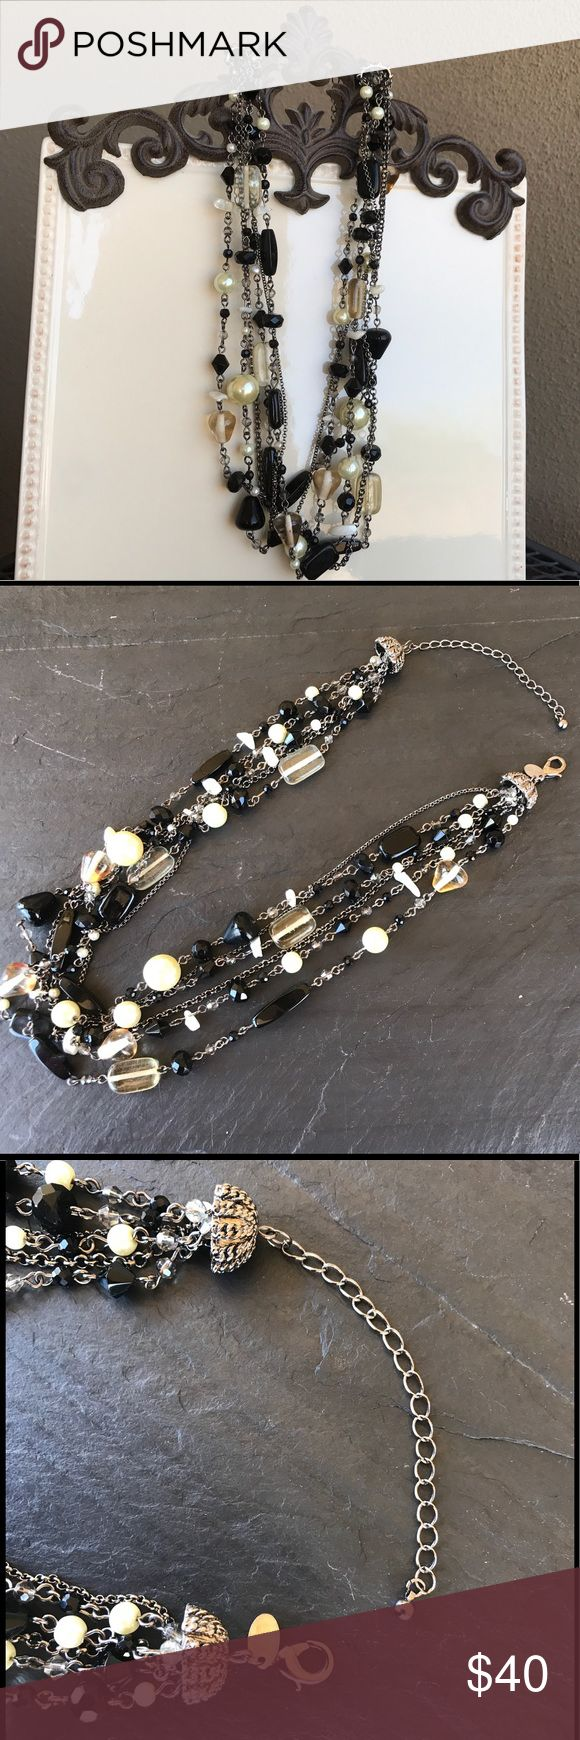 Lia Sophia six strand Necklace Lia Sophia Necklace wi/black and glass beads along with  crystal and pearls. I purchased at a Lia Sophia party years ago. Hangs beautifully! Lia Sophia Jewelry Necklaces